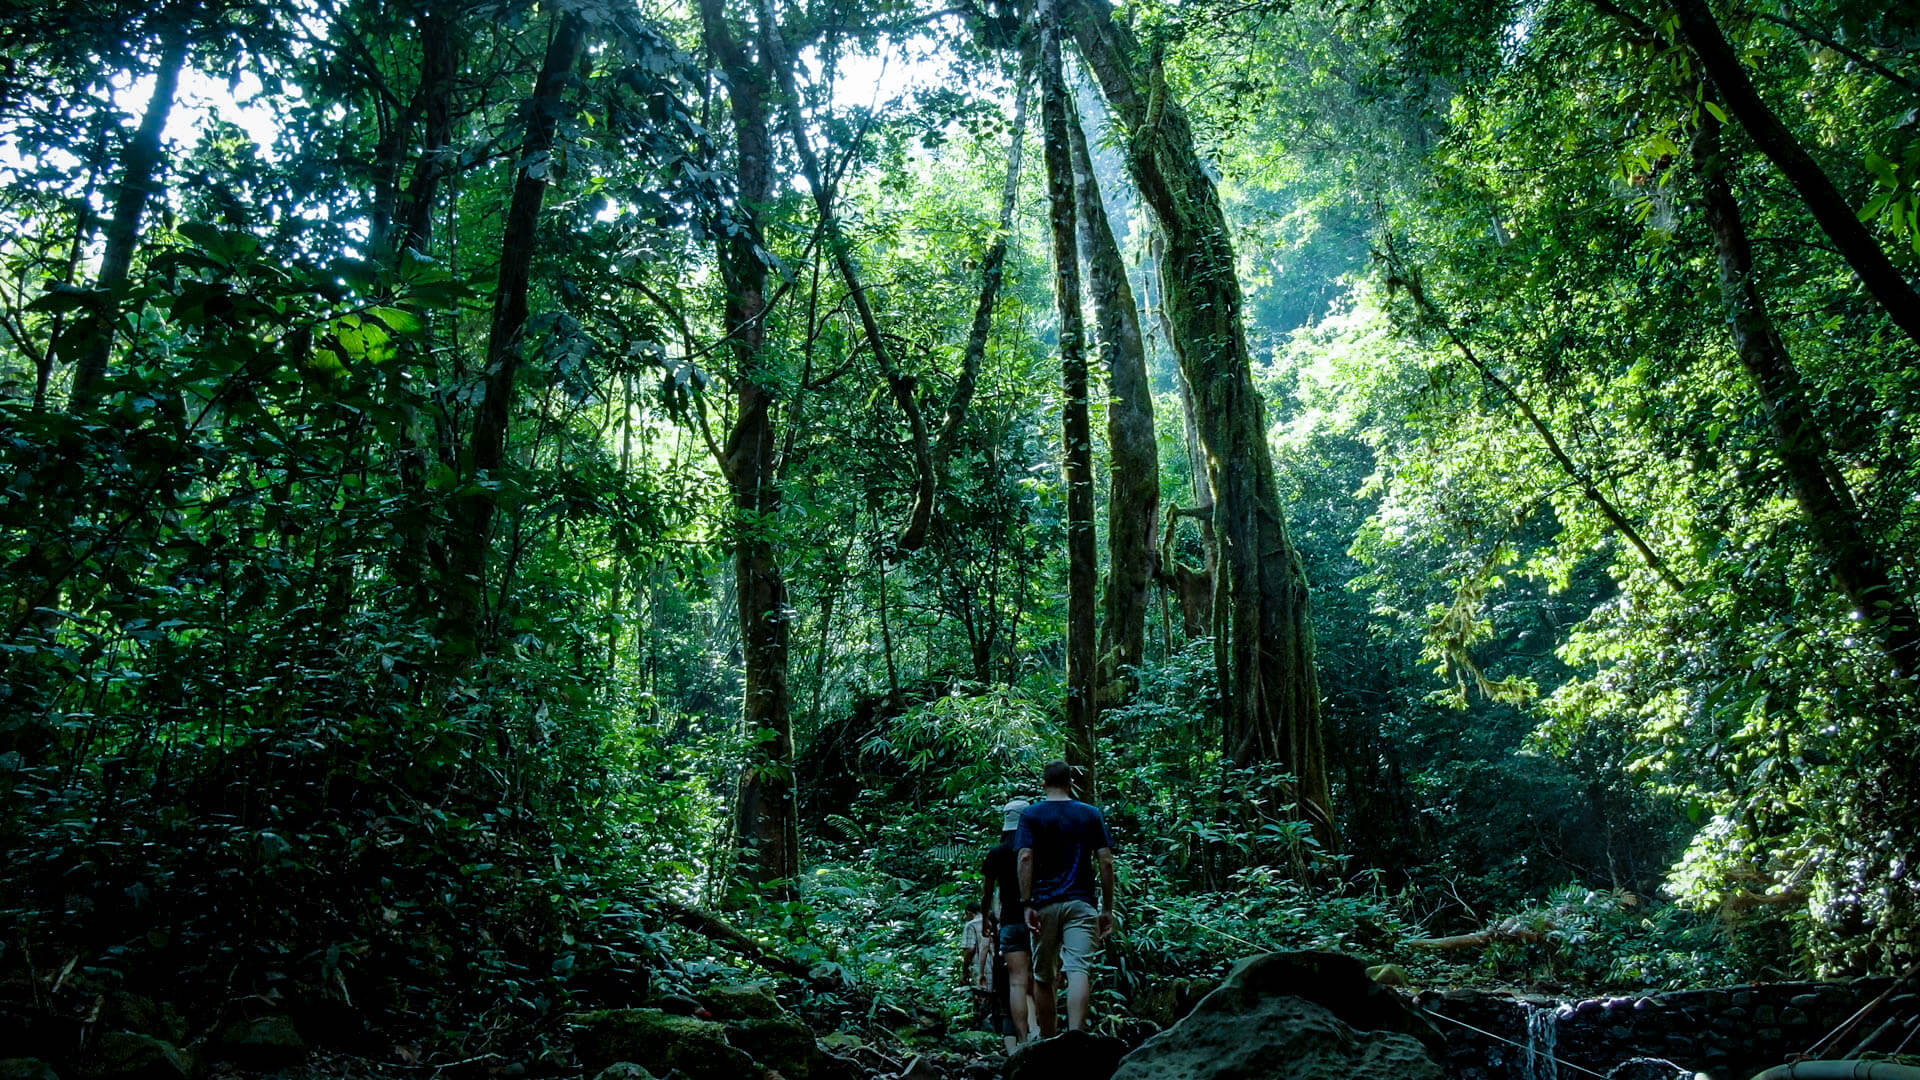 Packing List for 3-days 2-nights in Khao Sok National Park